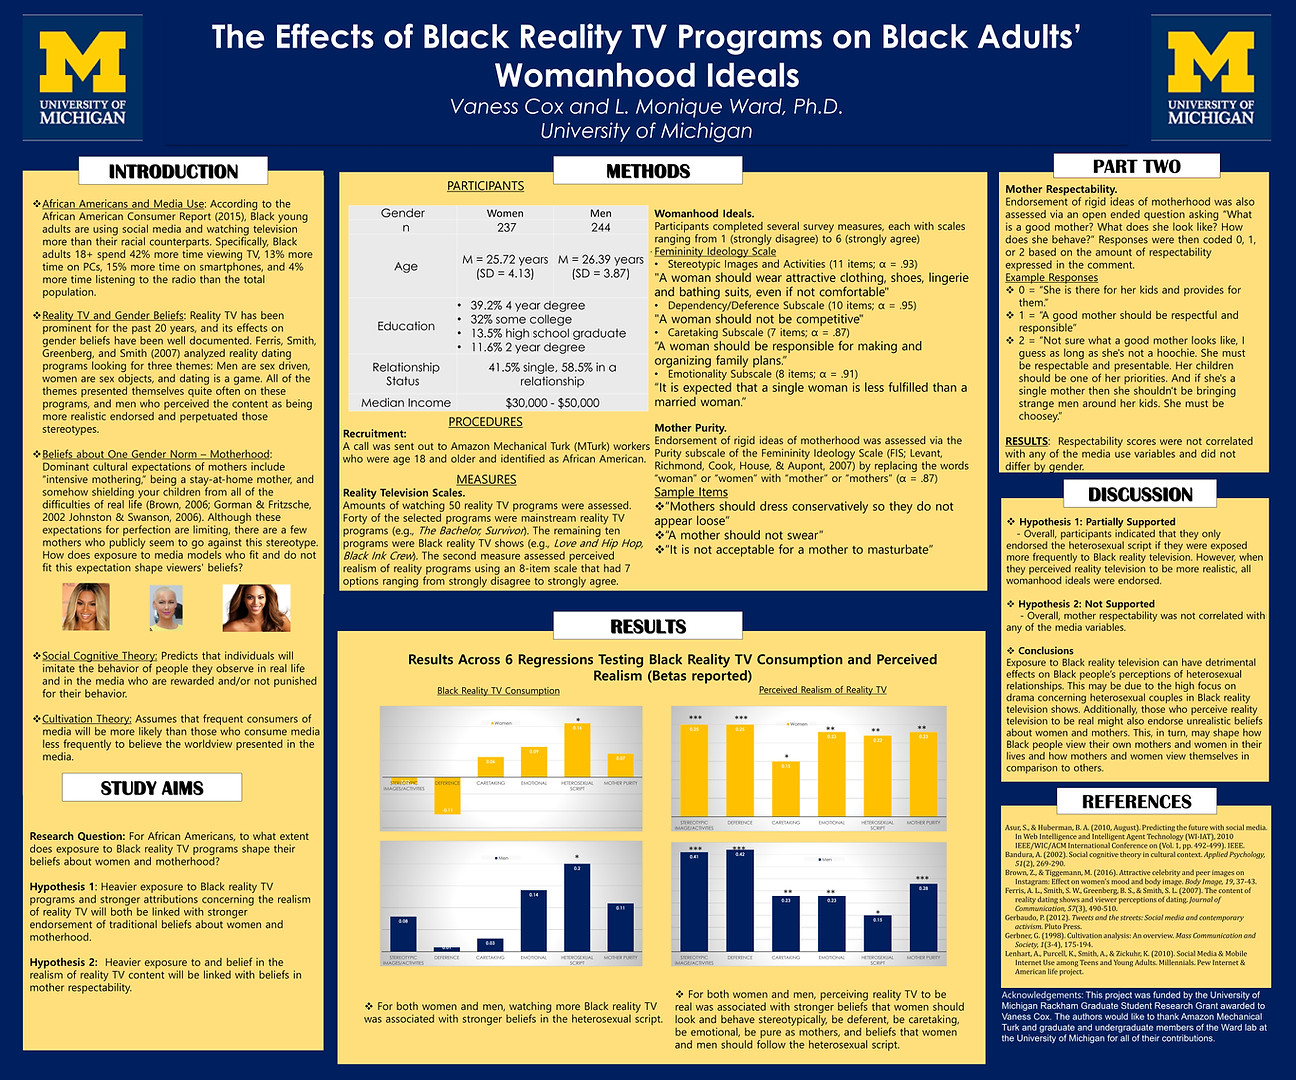 The Effects of Black Reality TV Programs on Black Adults' Womanhood Ideals